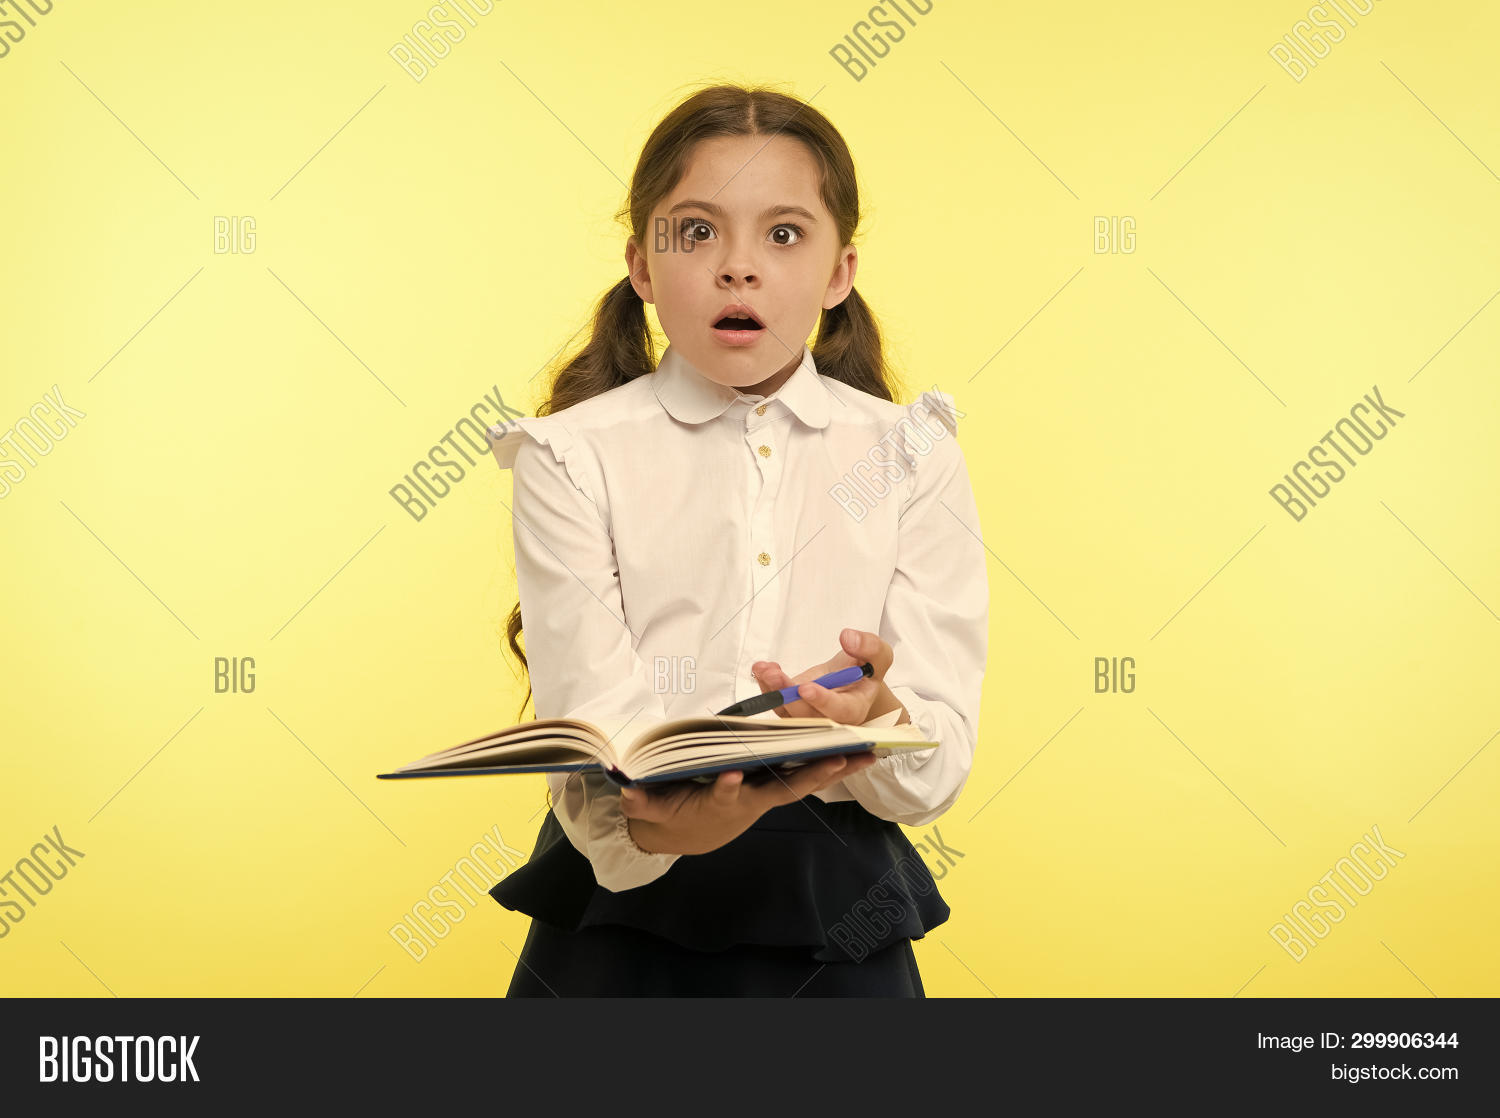 about,adorable,background,basic,book,child,childhood,clothes,concept,cute,diligent,duty,education,excellent,face,formal,from,get,girl,hold,information,kid,knowledge,learn,lesson,little,make,note,prepare,pupil,puzzled,remember,school,schoolgirl,september,shock,small,smart,study,surprised,textbook,uniform,wear,write,yellow